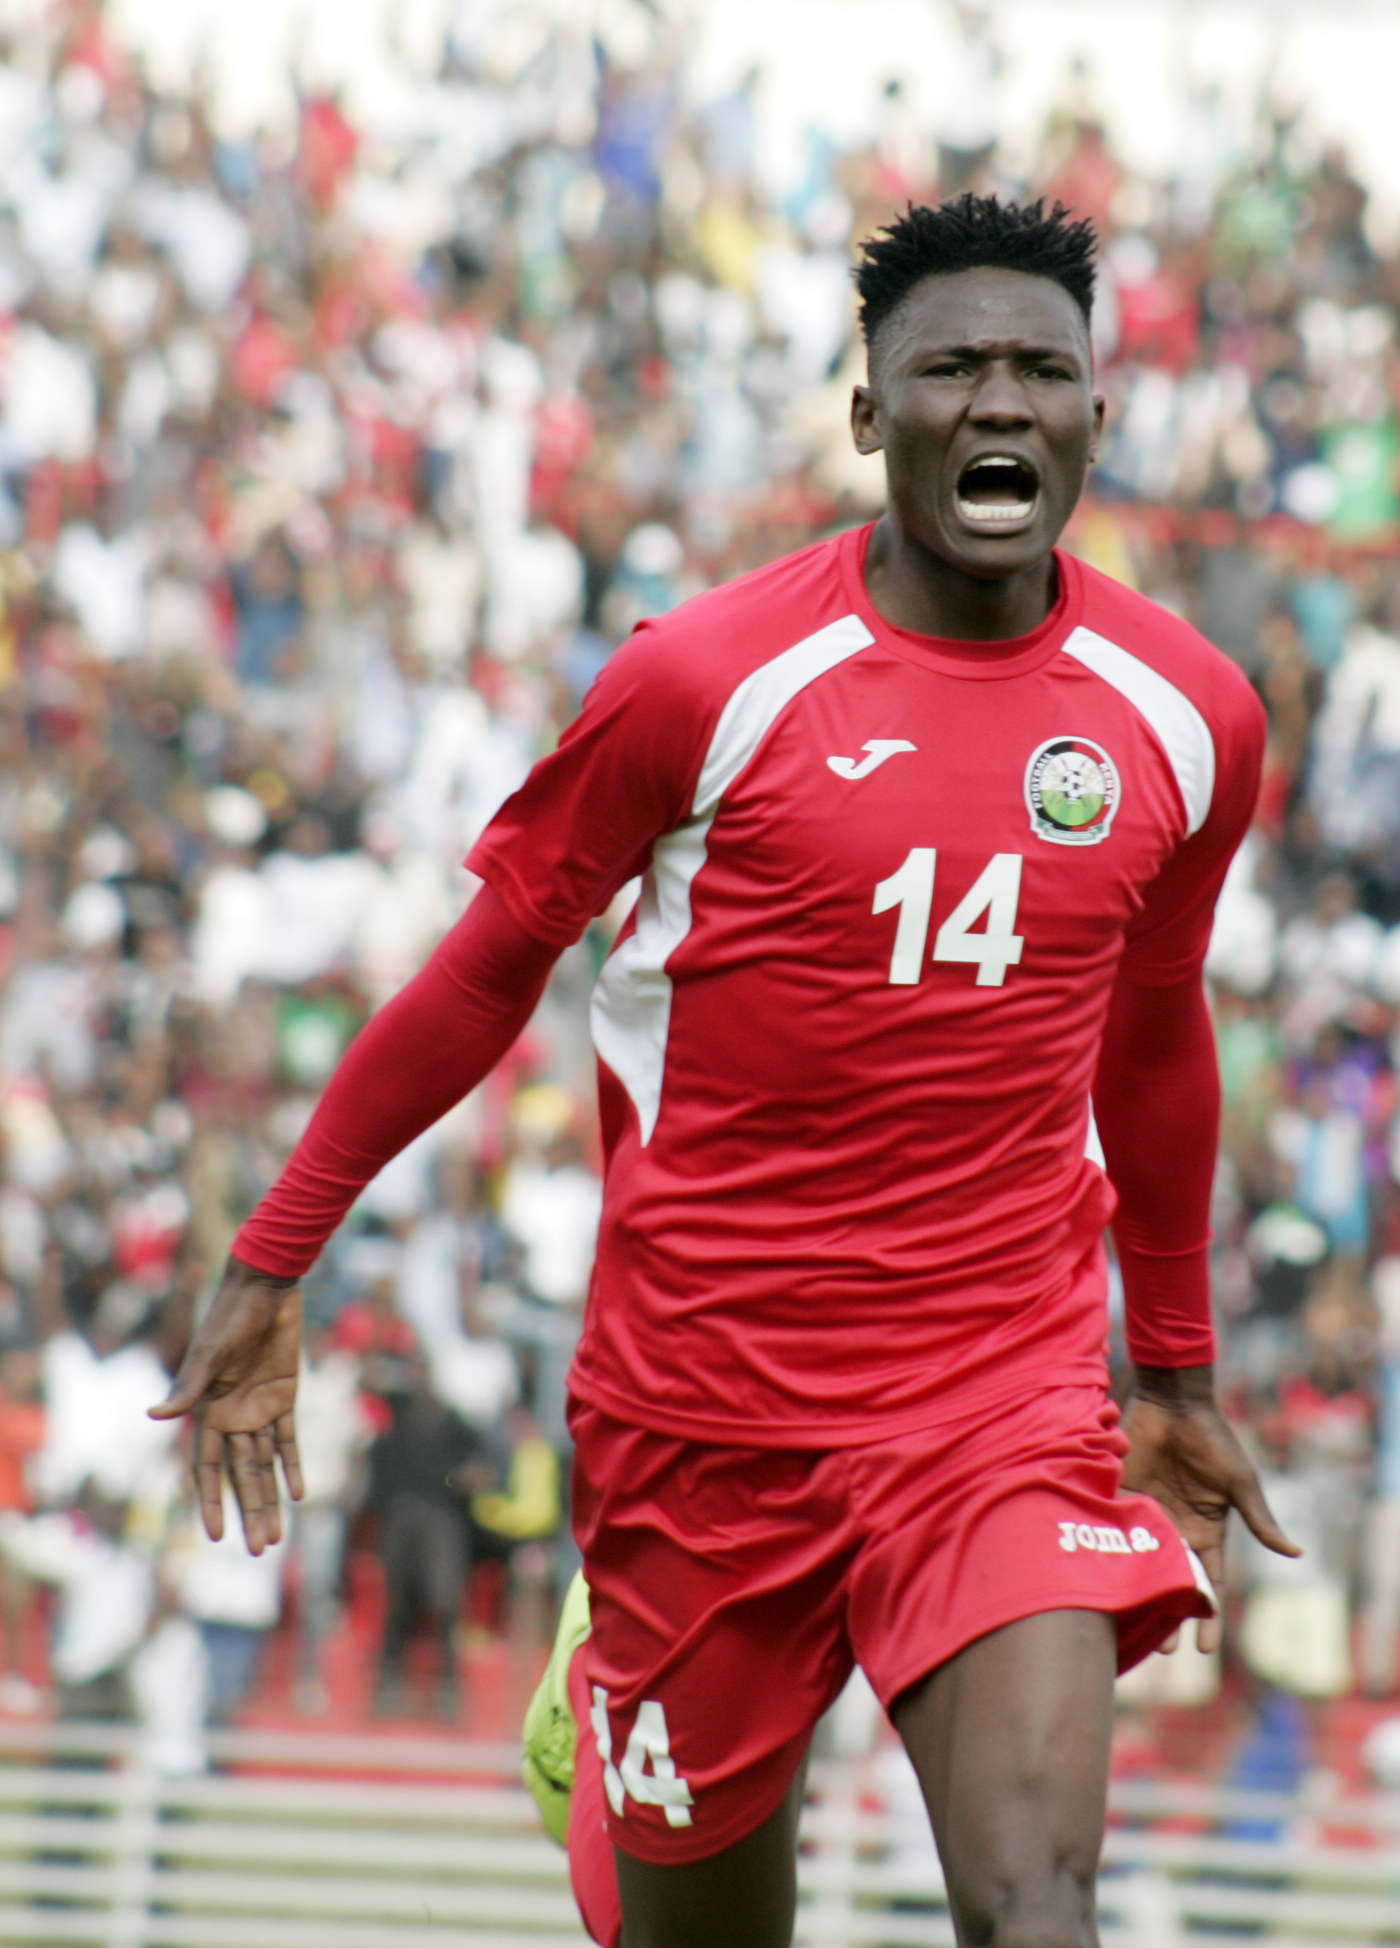 Harambee Stars striker, Michael Olunga, celebrates his goal against Cape Verde in the 2018 World Cup qualifiers at Nyayo Stadium. He was on target as Stars were held 1-1 by Burundi. PHOTO/File